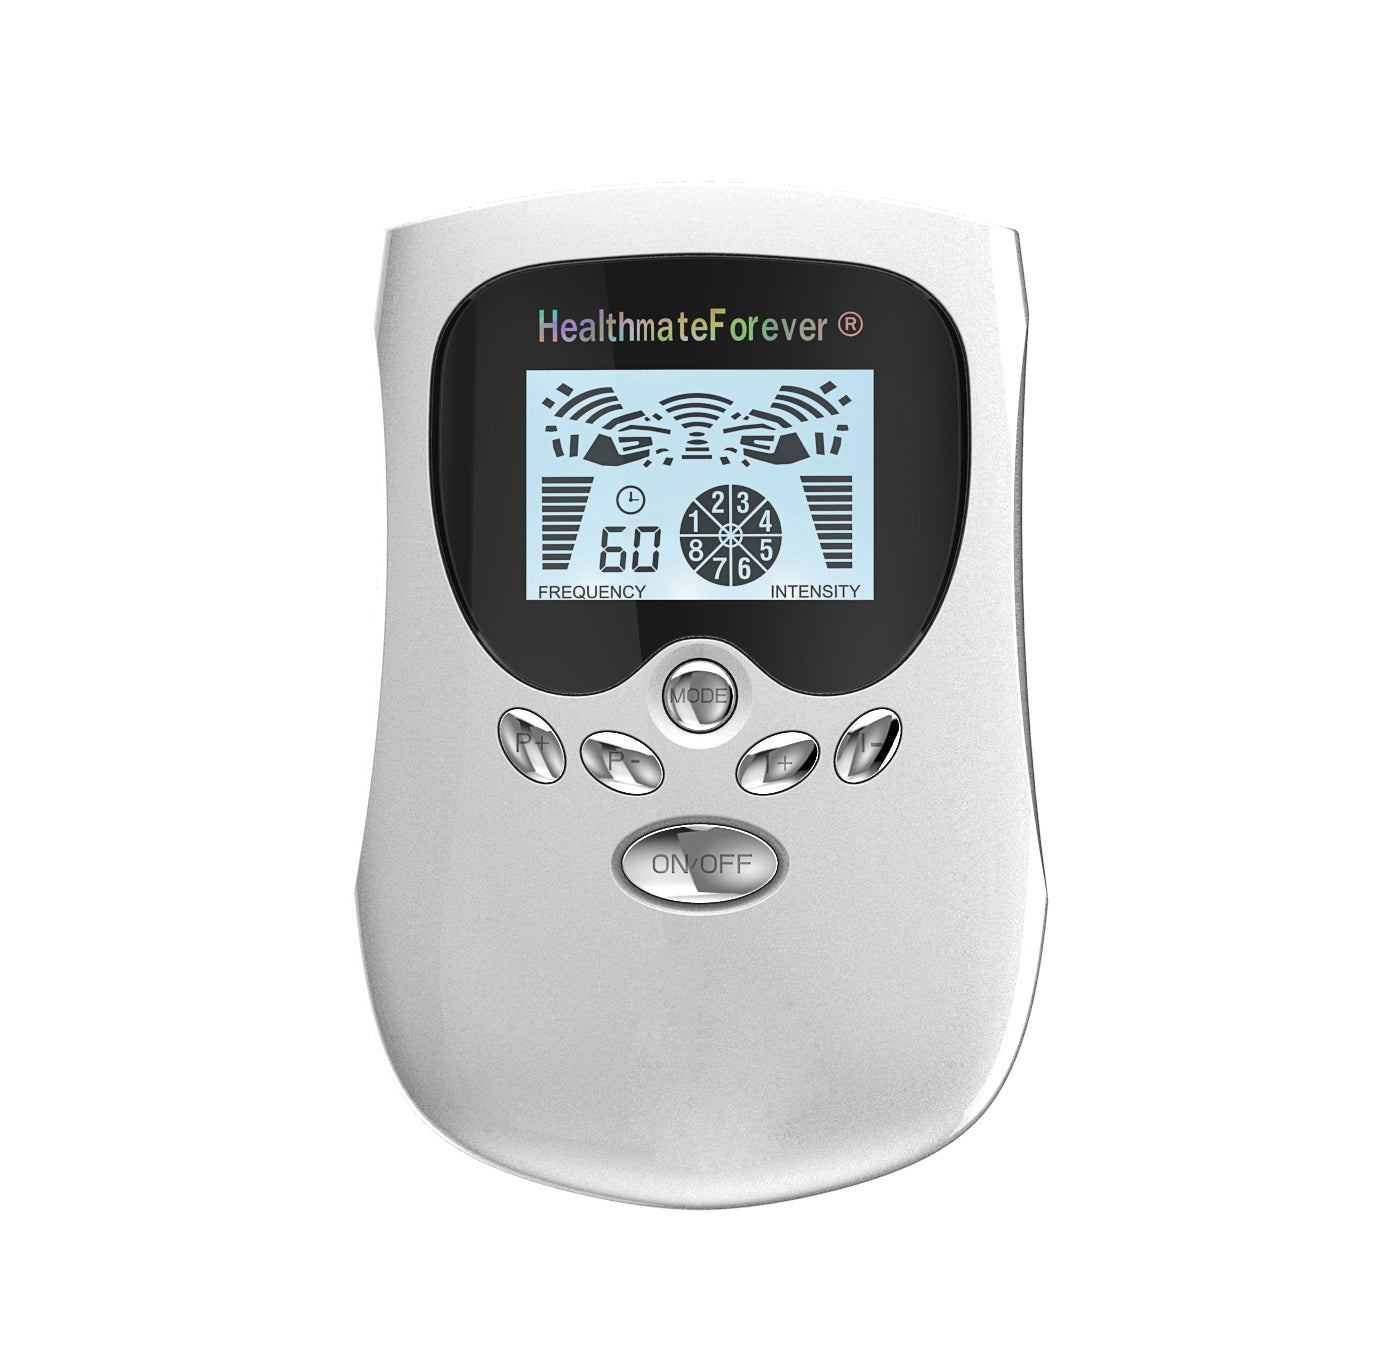 PM8IS TENS Unit & Muscle Stimulator - HealthmateForever.com